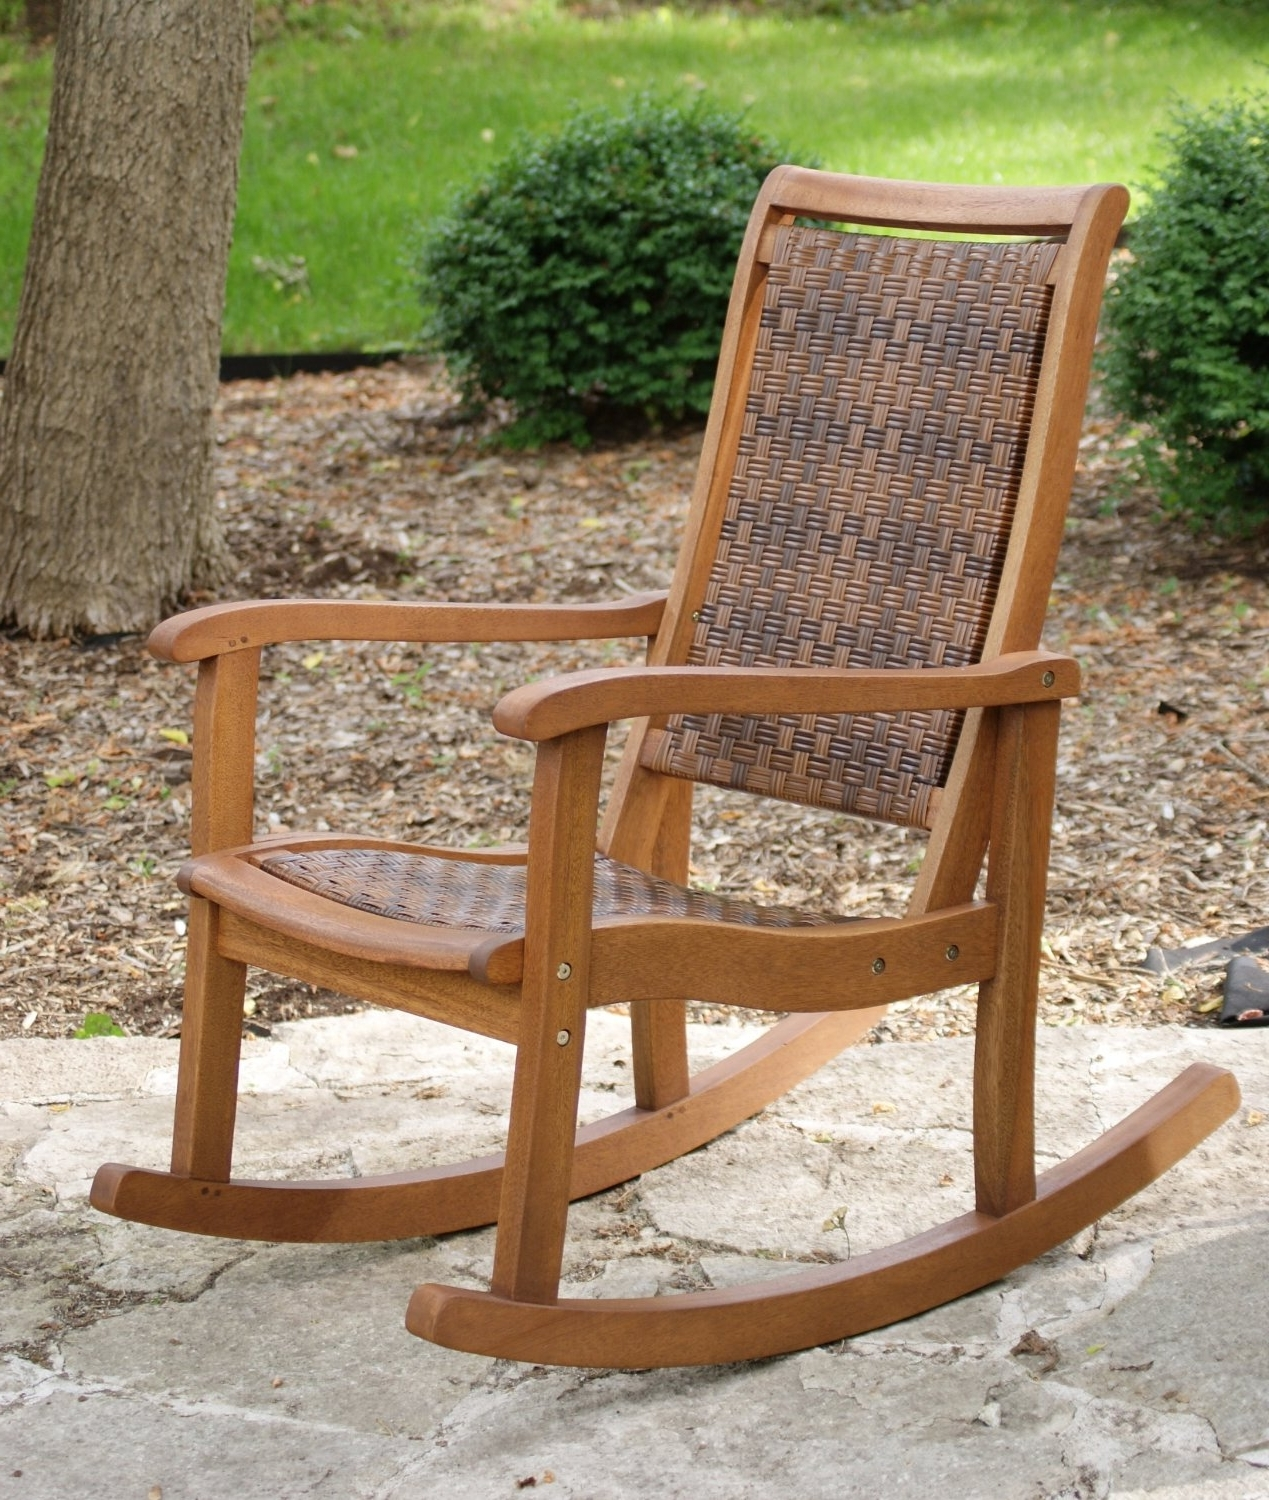 Outdoor Vinyl Rocking Chairs With Regard To 2017 Great Rocking Patio Chairs Outdoor Wicker Rocking Chairs Patio (View 10 of 15)